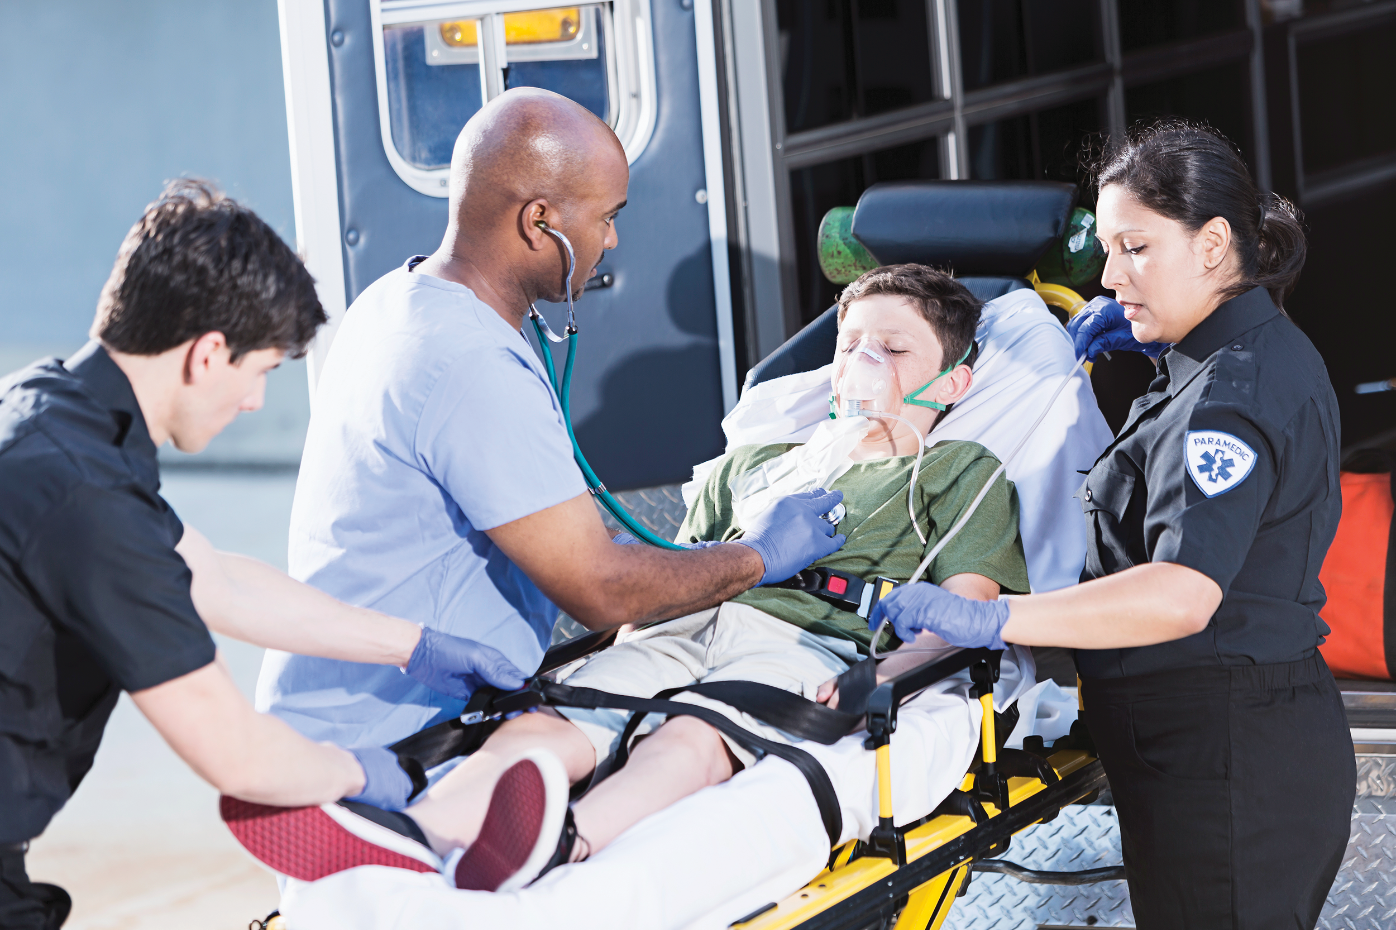 Tactical Medical Response to School Shootings